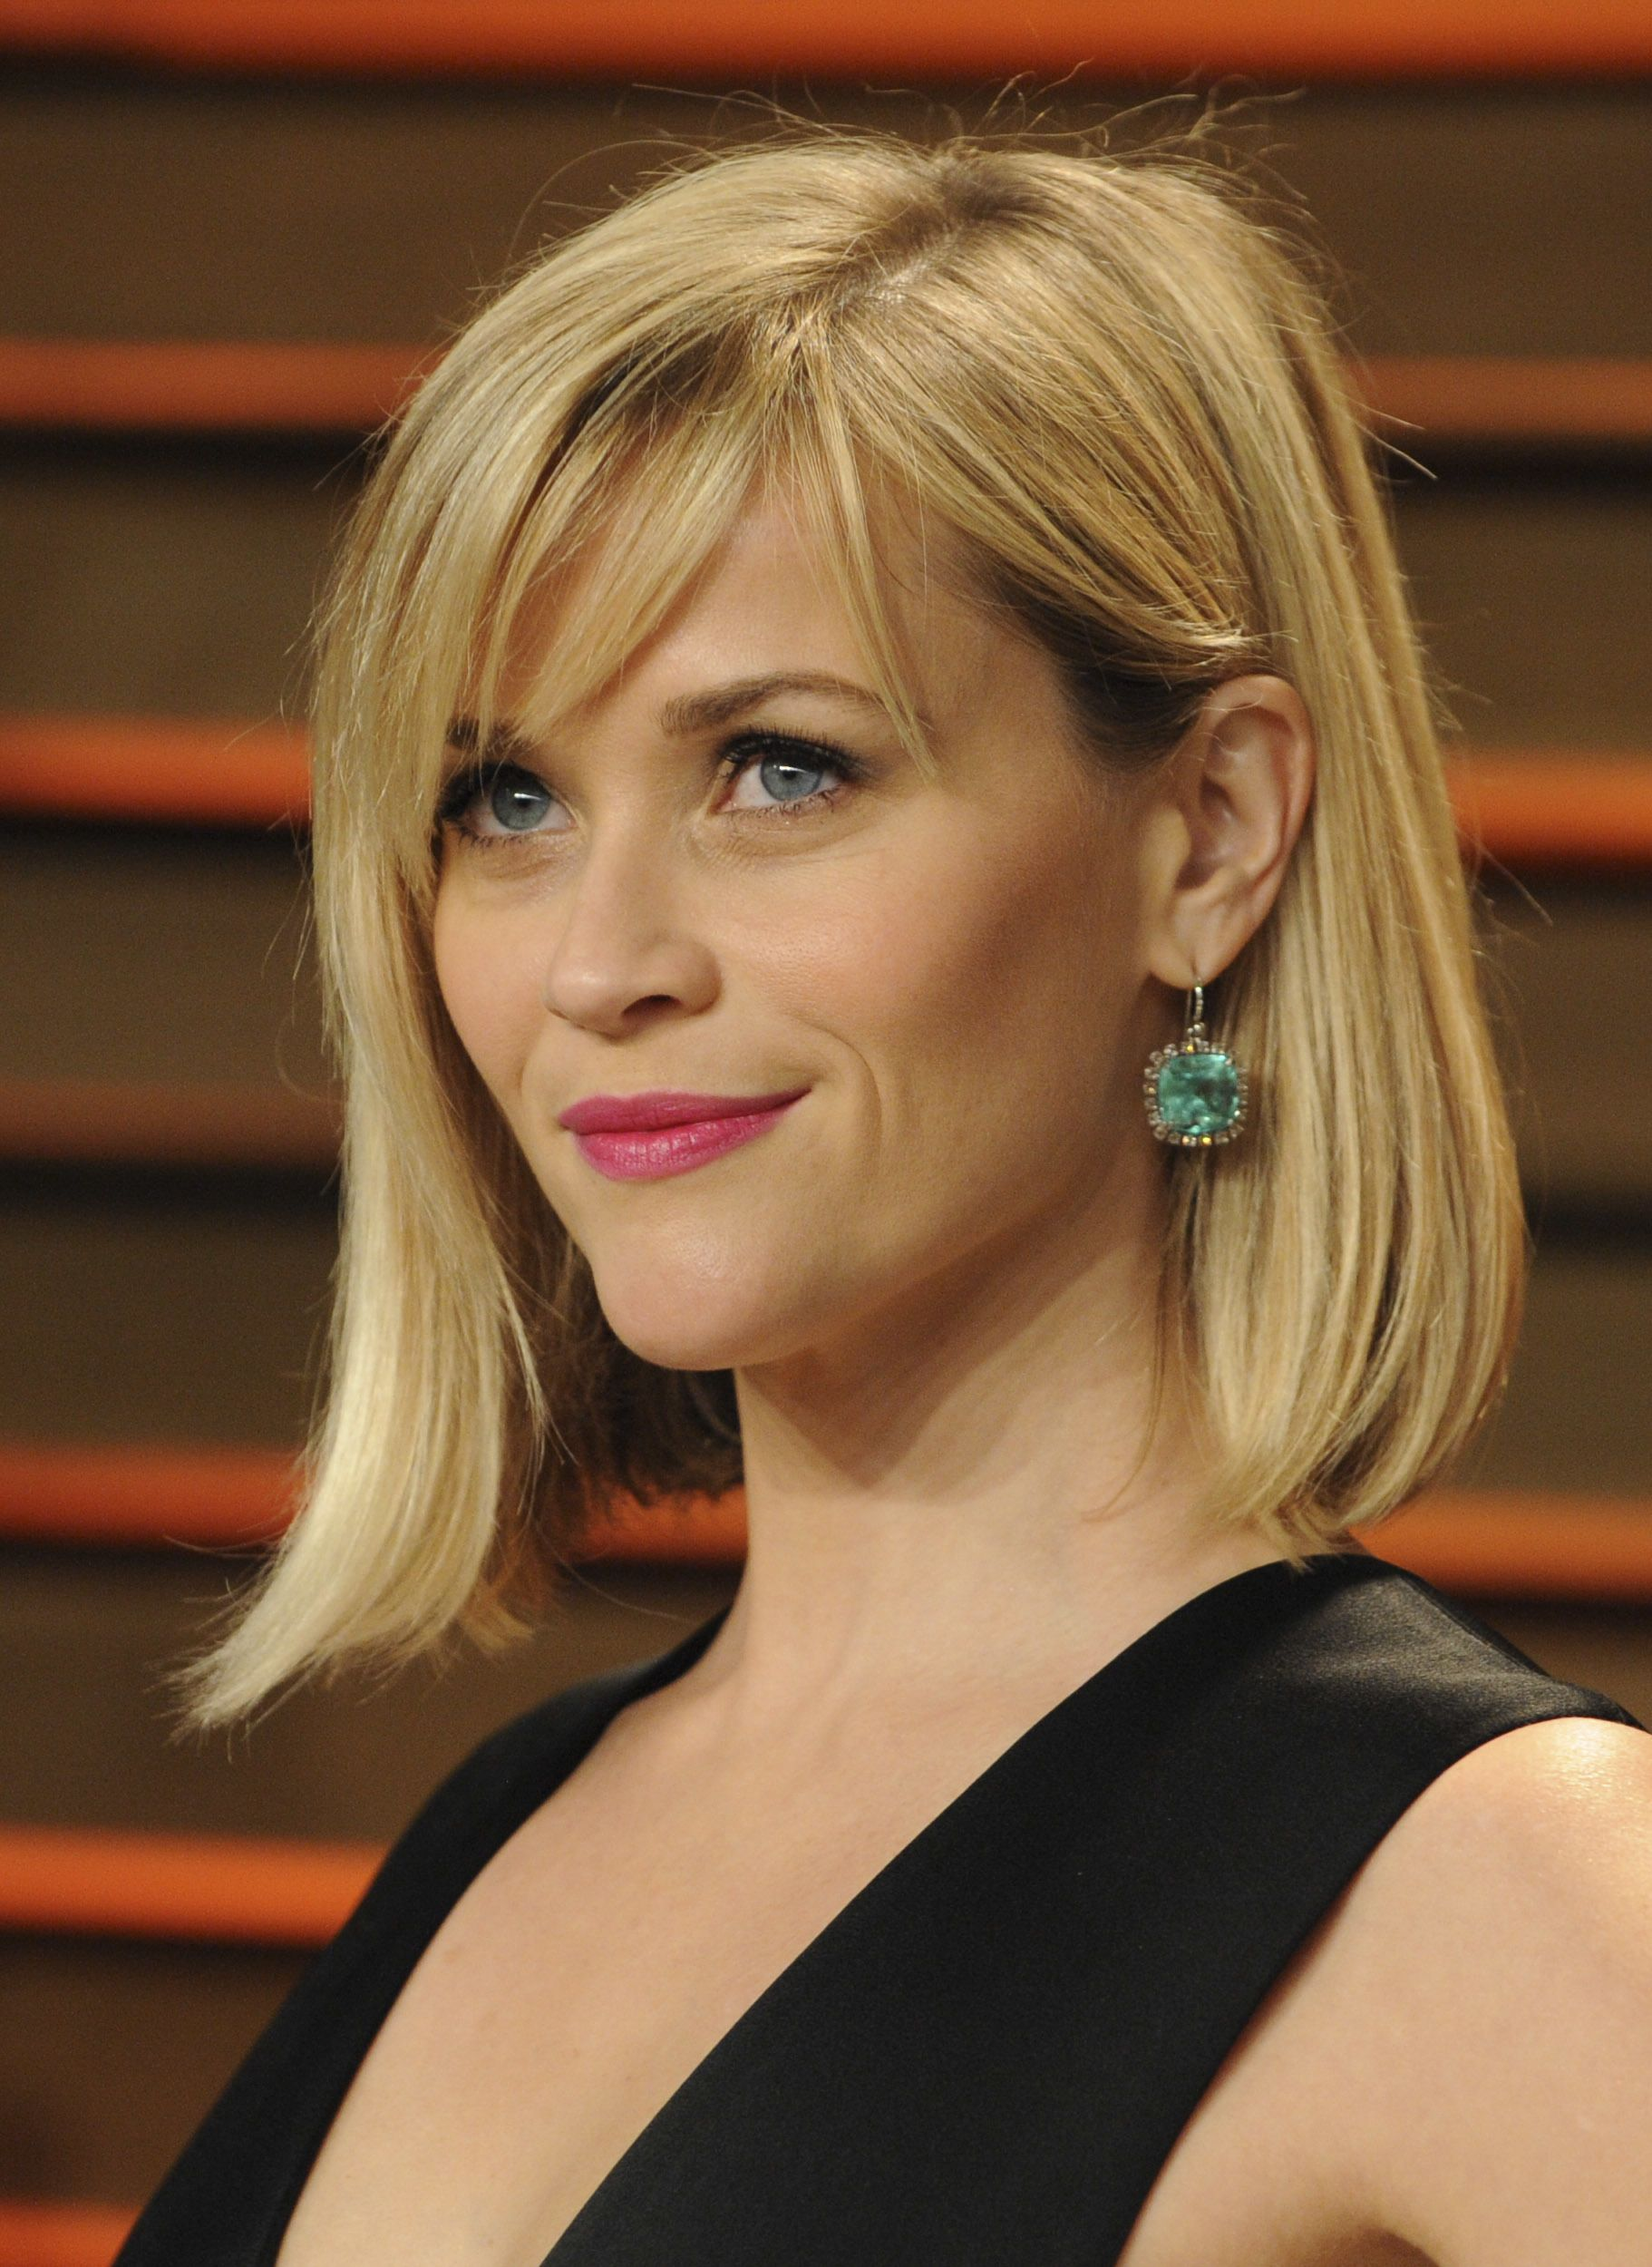 reese witherspoon recent haircut Google Search